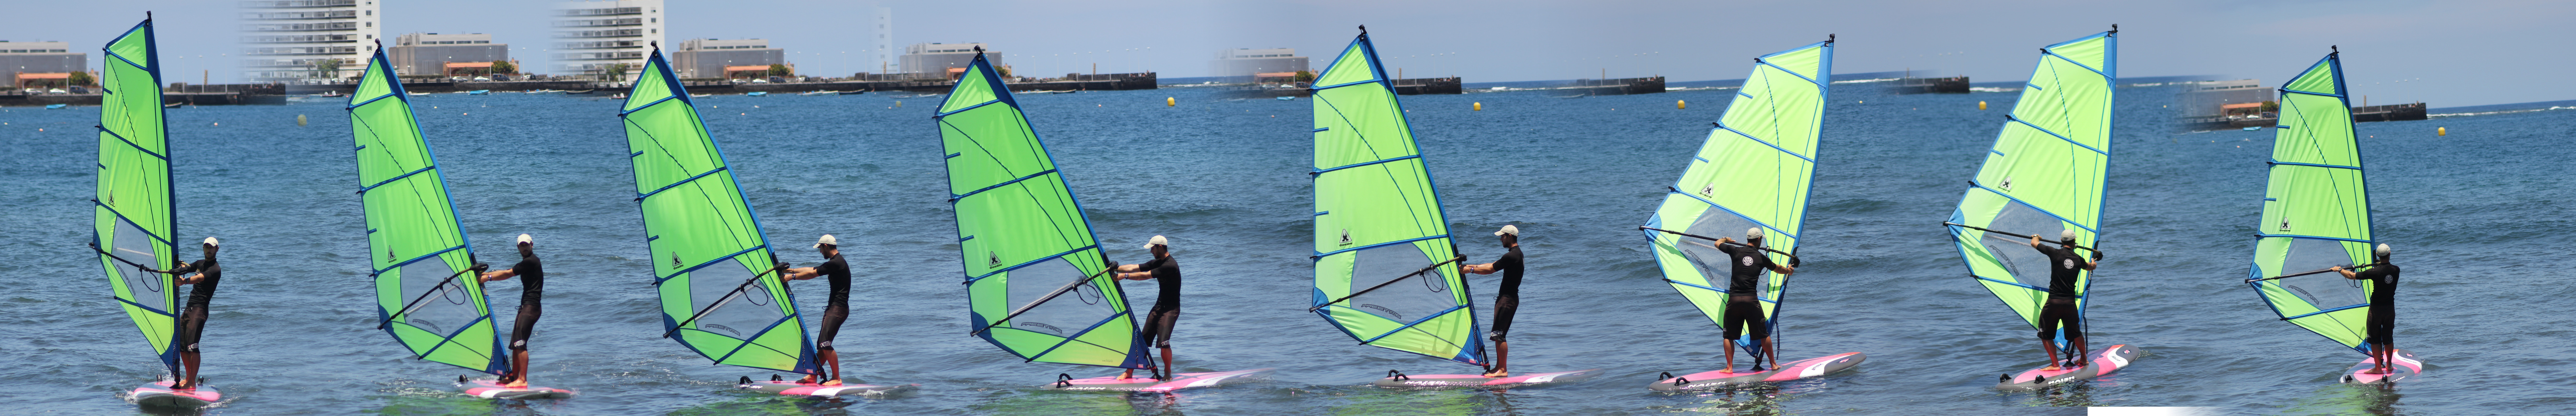 How to Windsurf - Tacking sequence